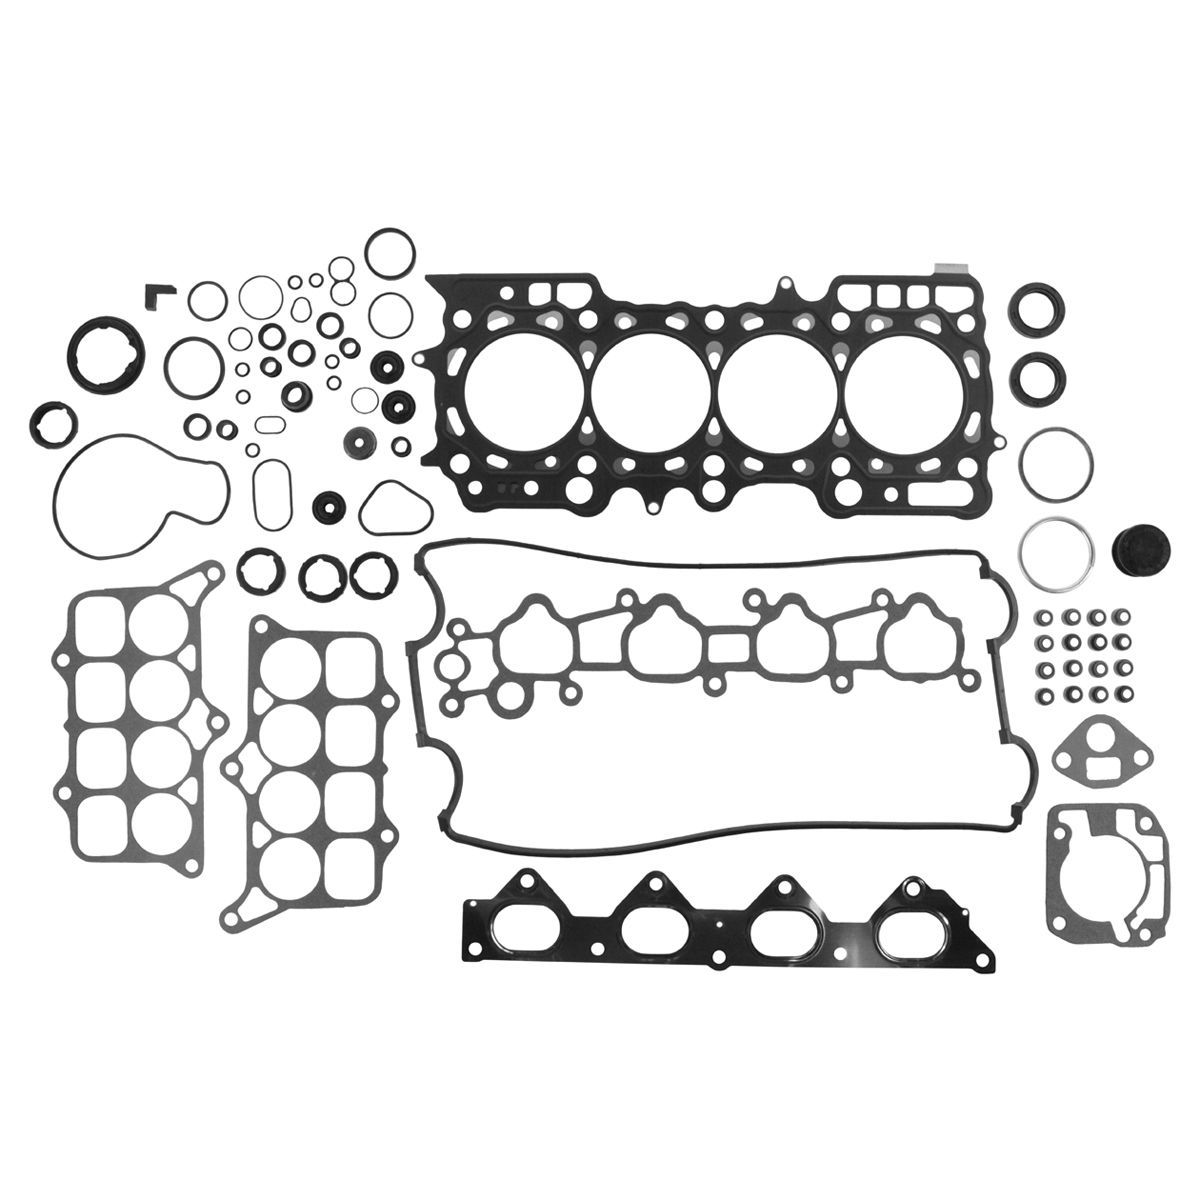 Engine Head Gasket Set Kit Vin H23a1 For 92 96 Honda